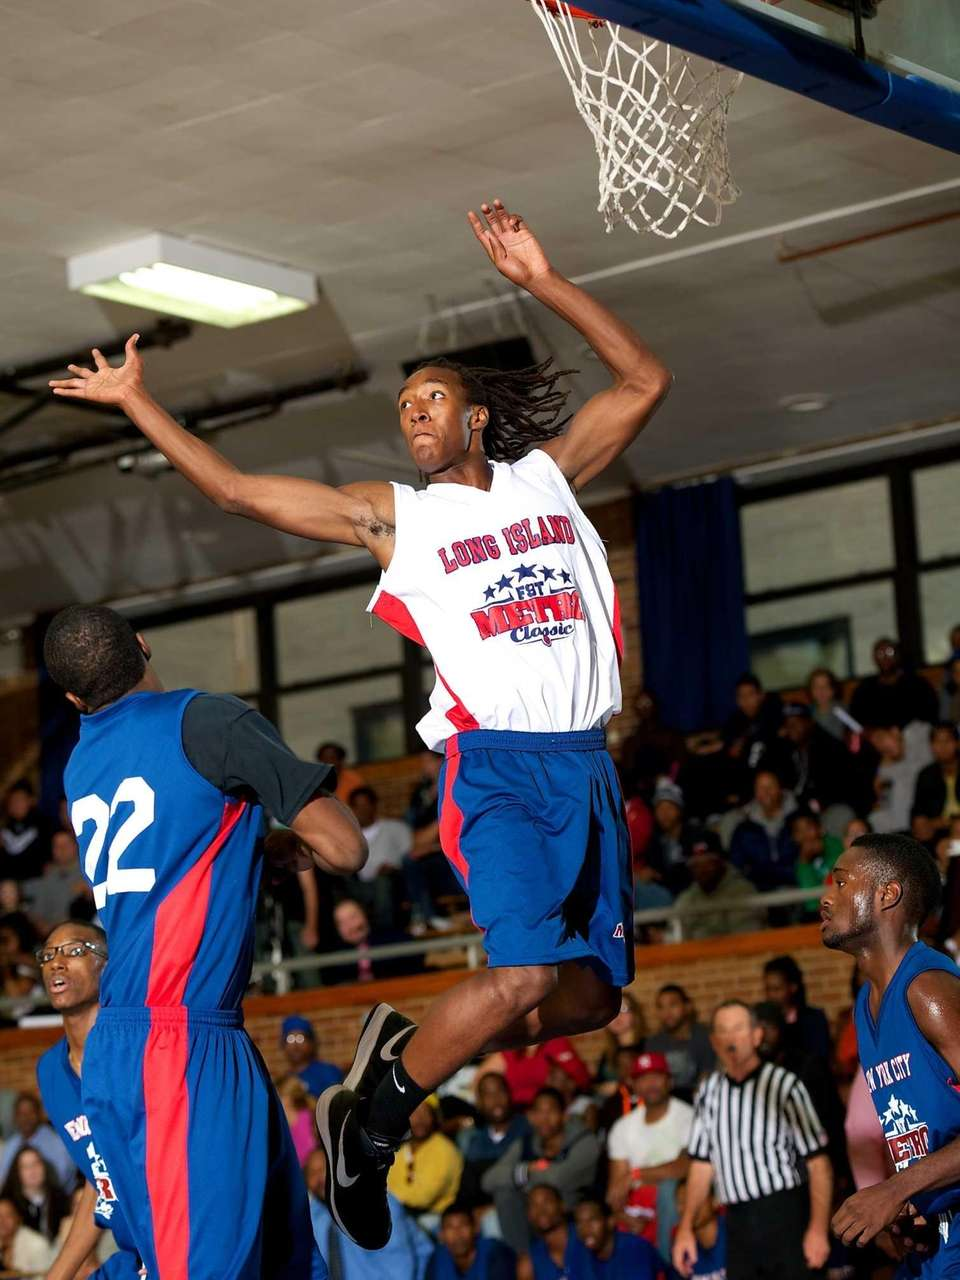 Curtis Jenkins, a Long Island All-Star forward from